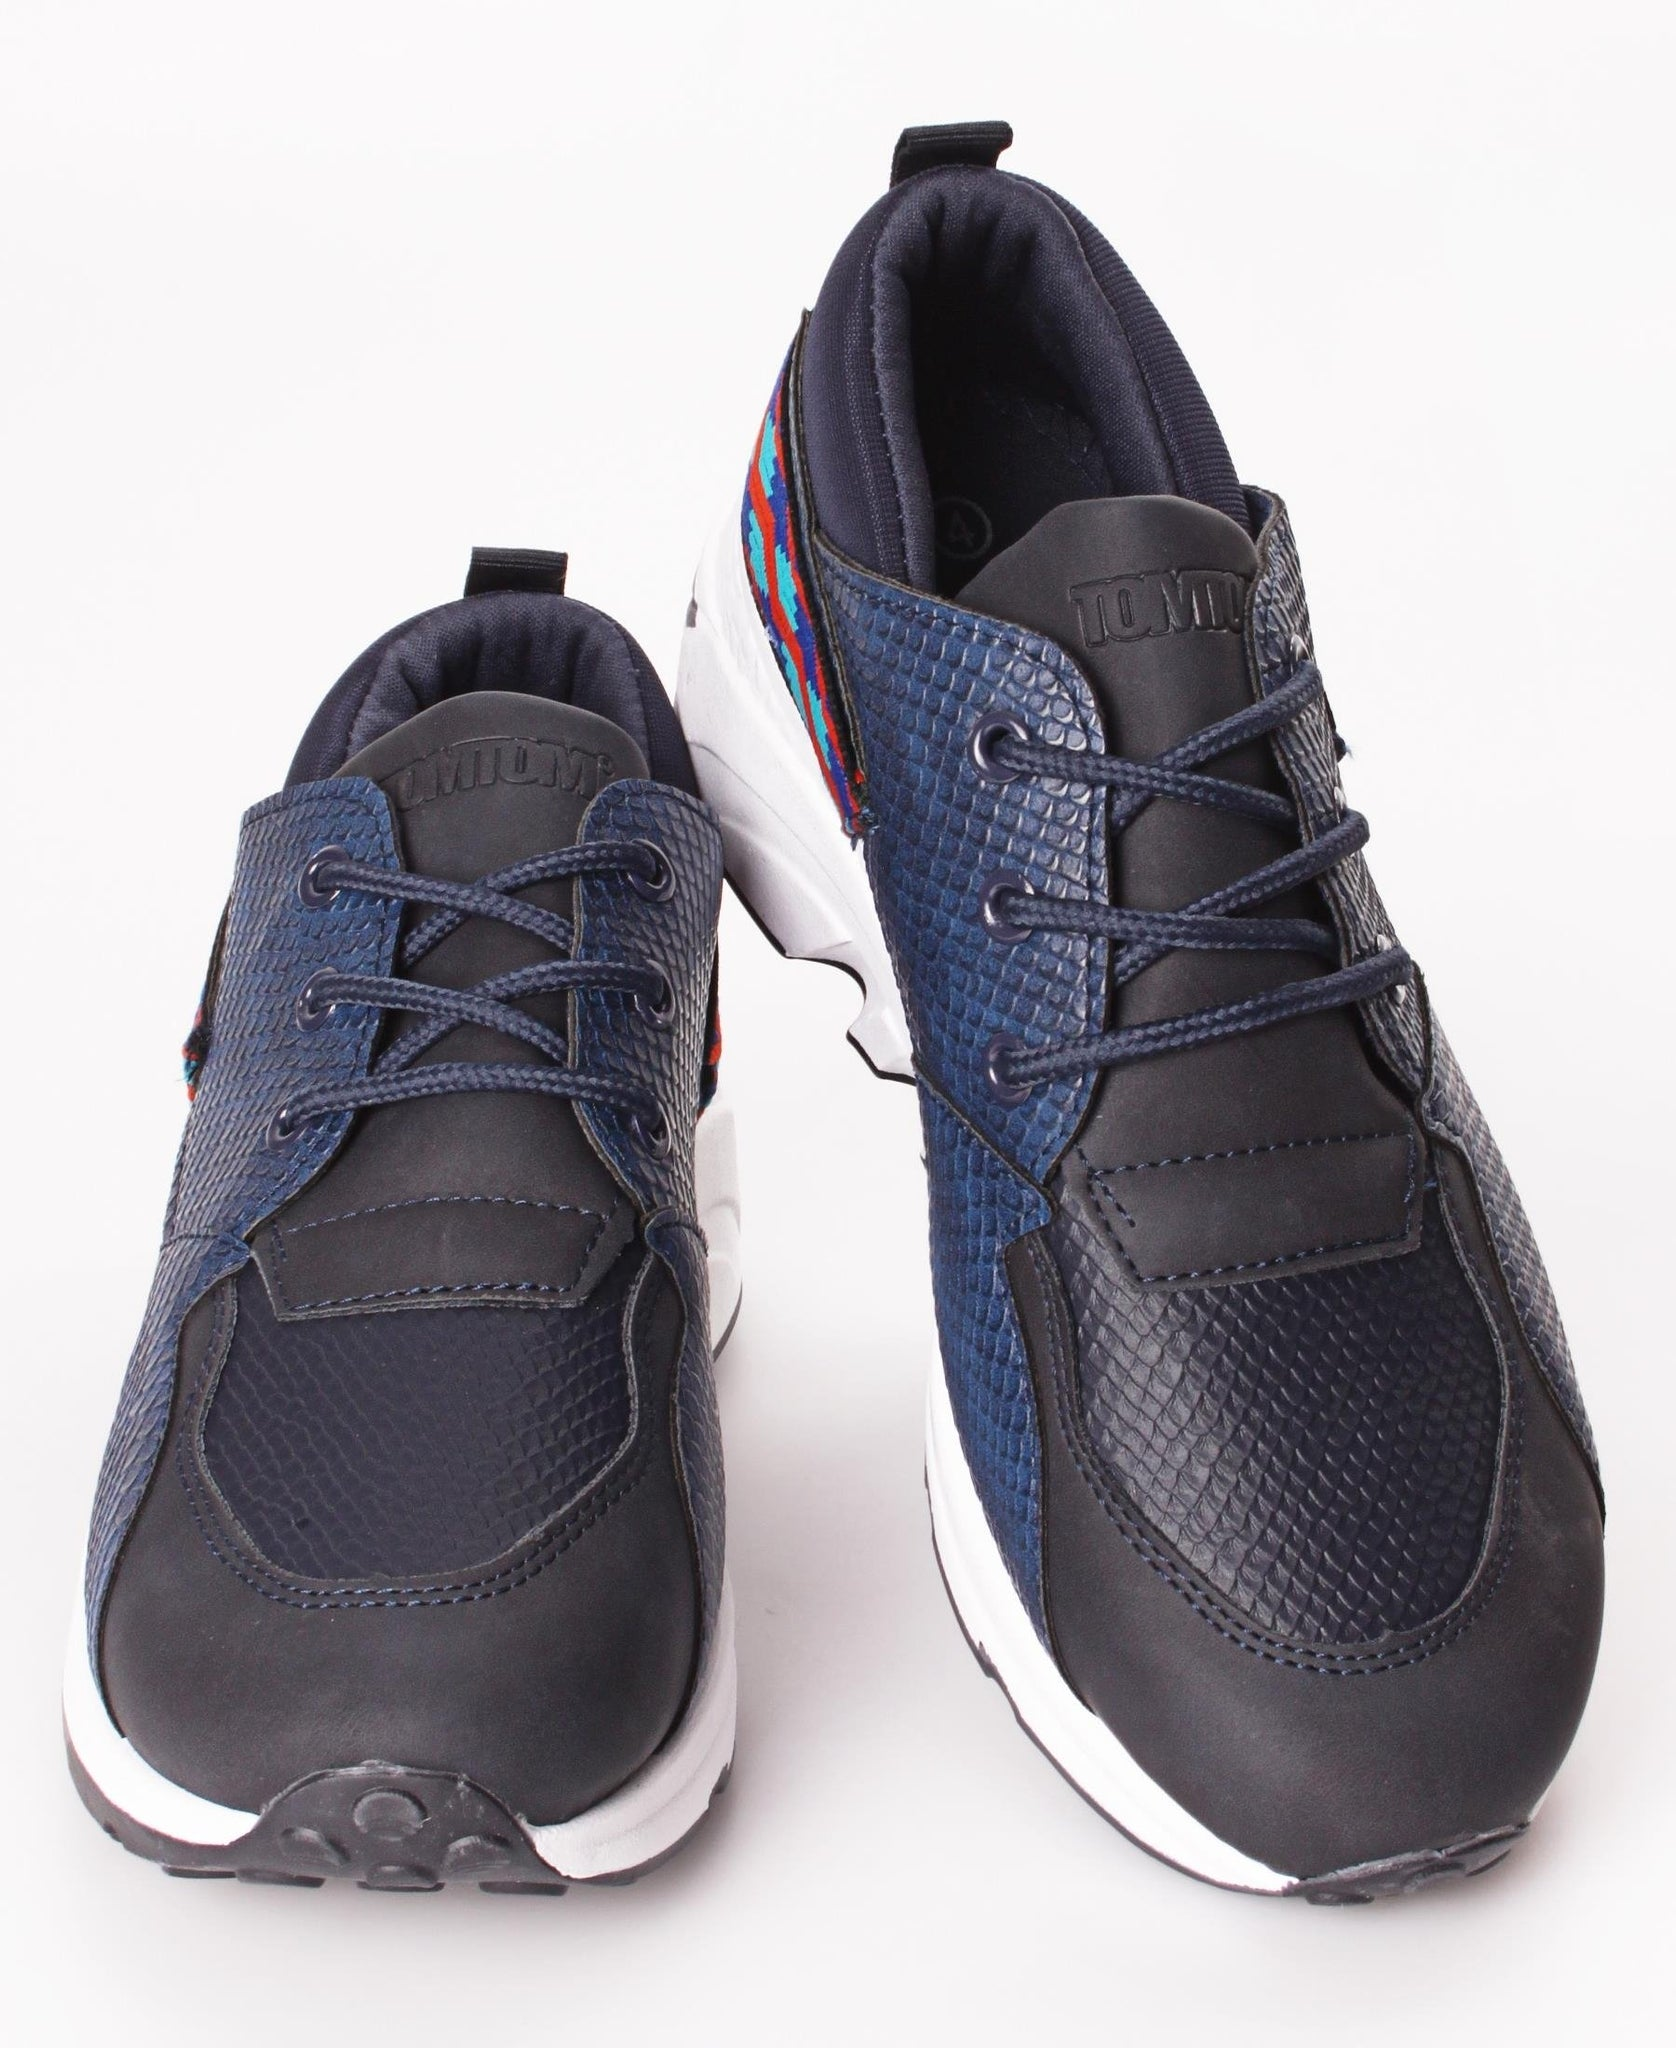 Ladies' Ease Sneakers - Navy